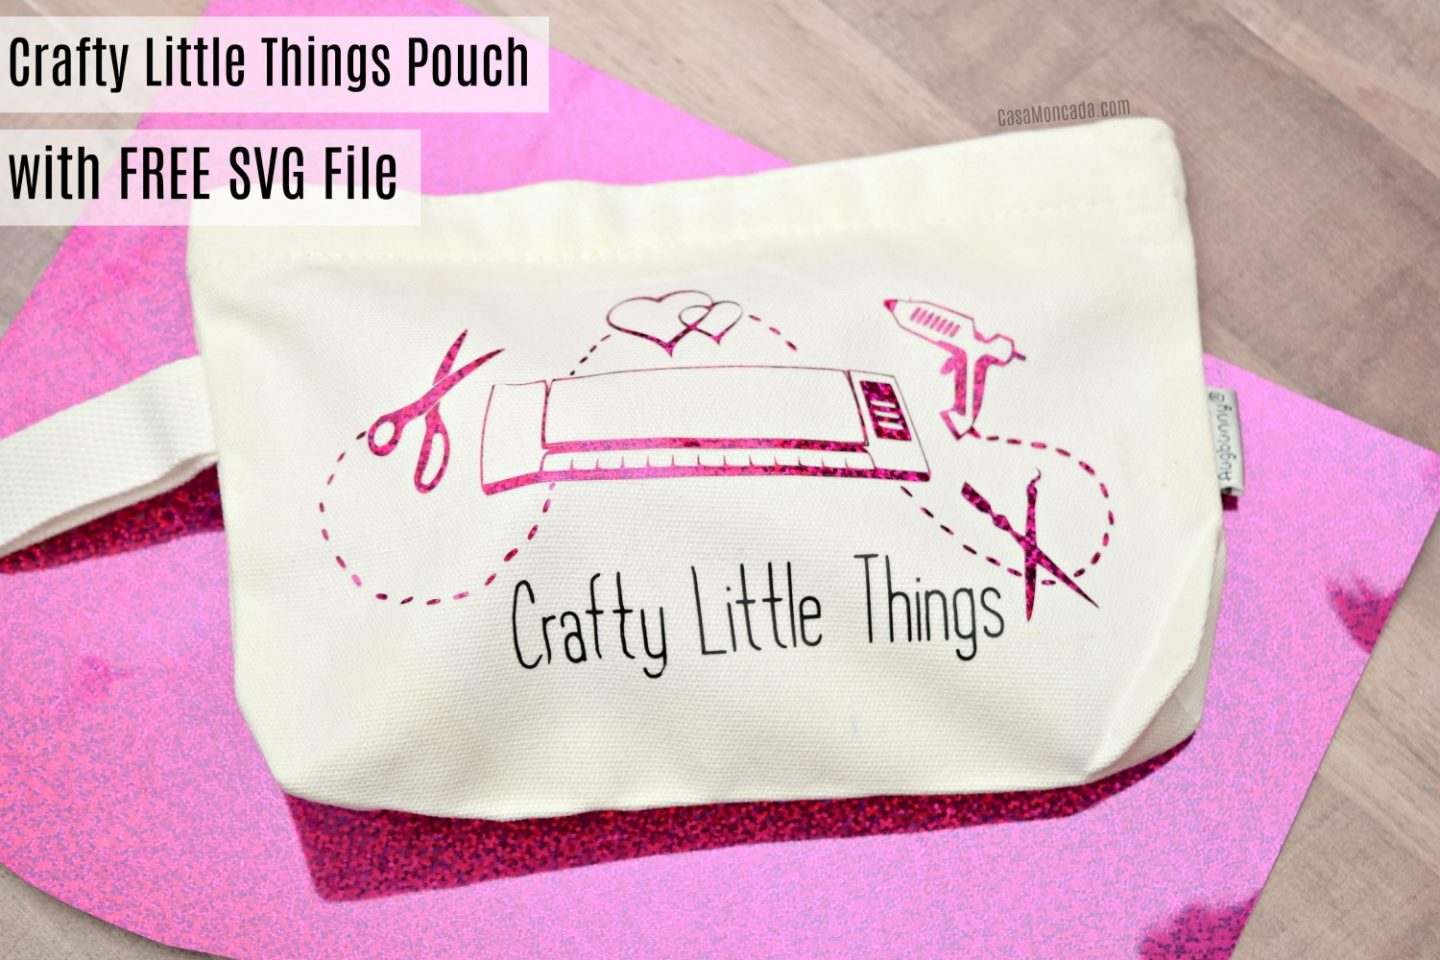 DIY crafty little things bag with free cut file